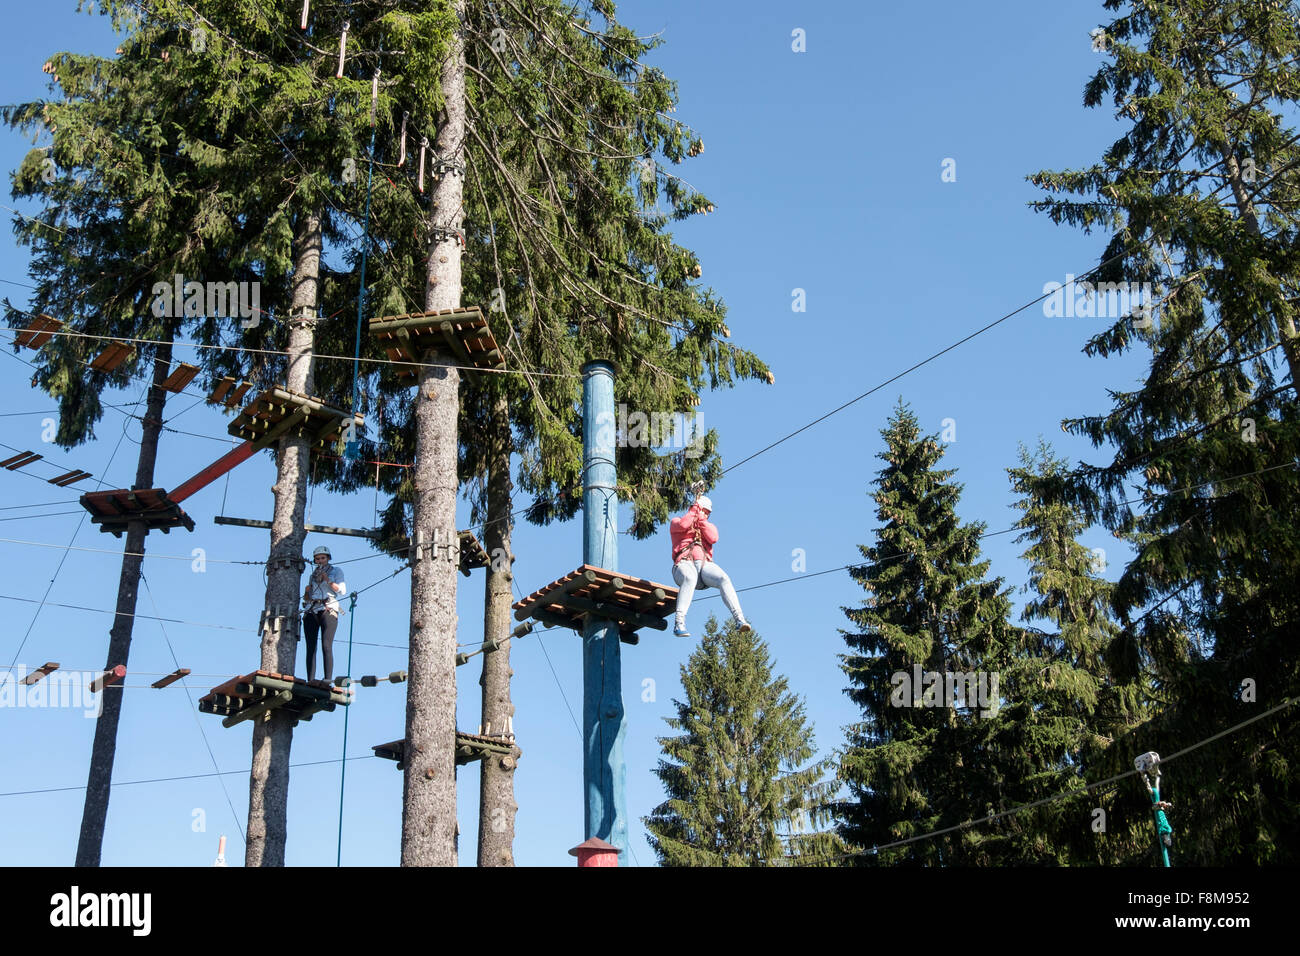 Girl riding on zip wire on Trollandia Highwire Park aerial ropeway and obstacle course. Gubałówka Mountain - Stock Image